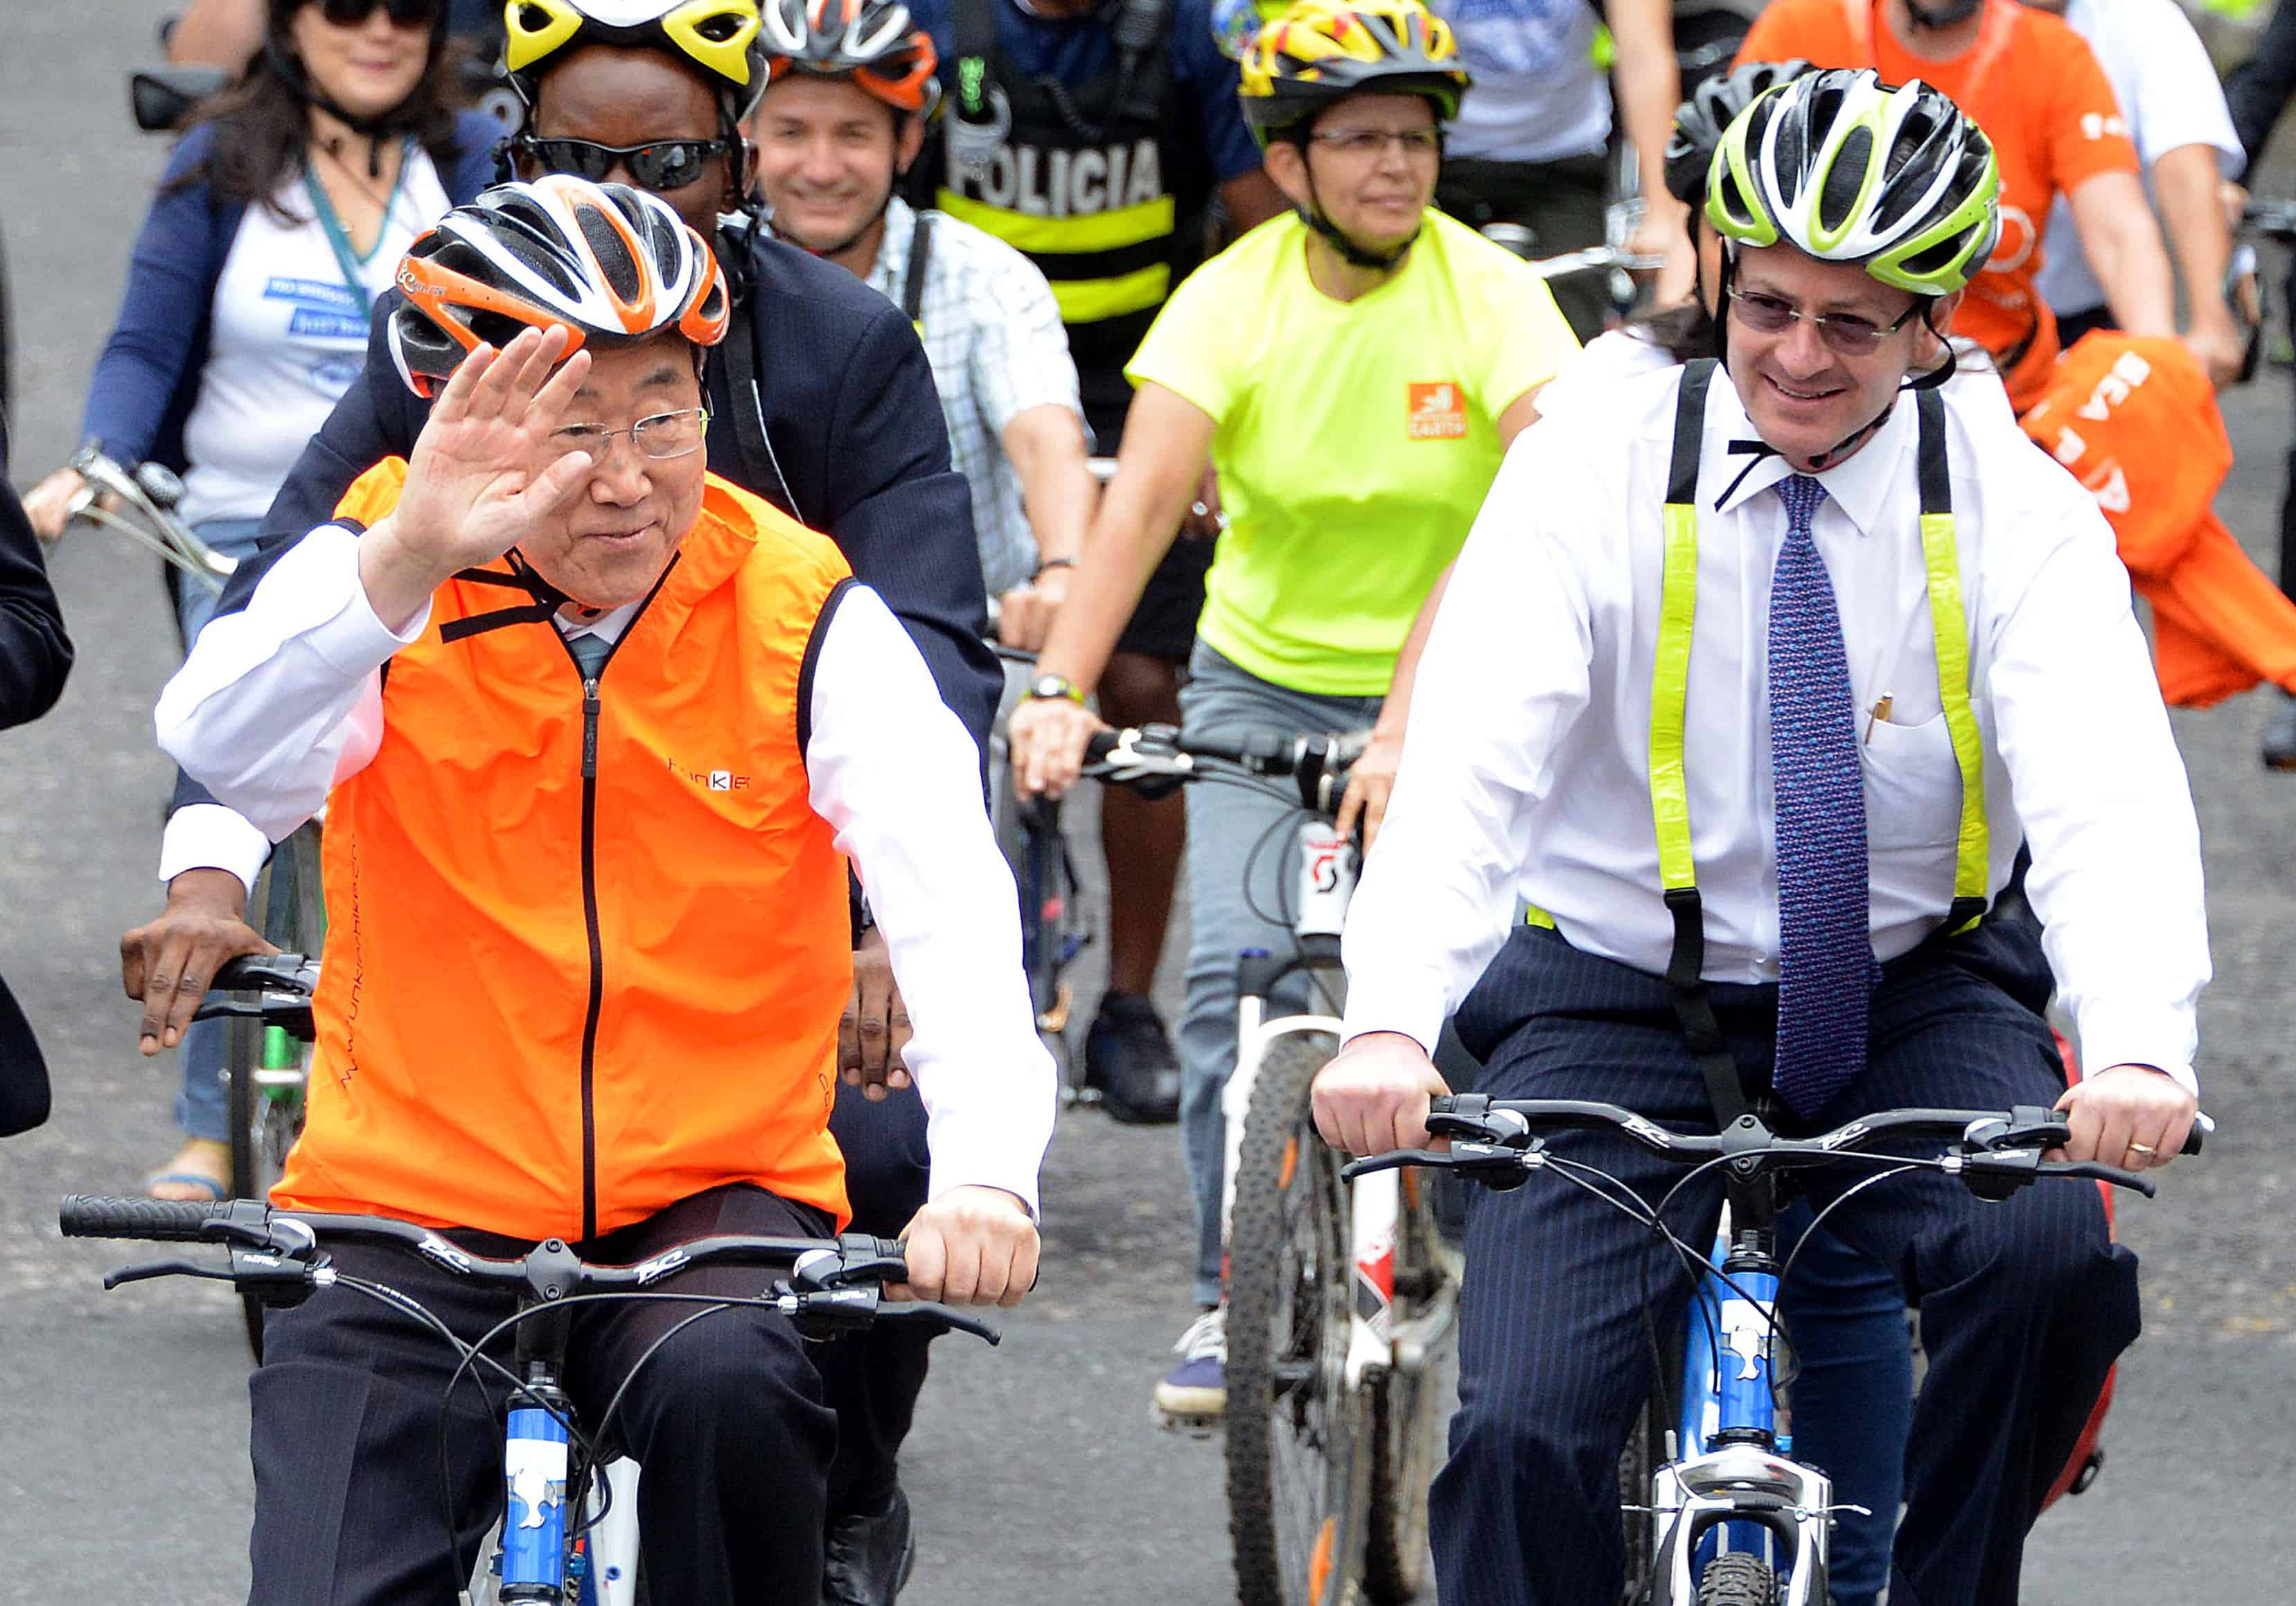 Un Secretary General Hops On A Bike To Promote Urban Cycling The